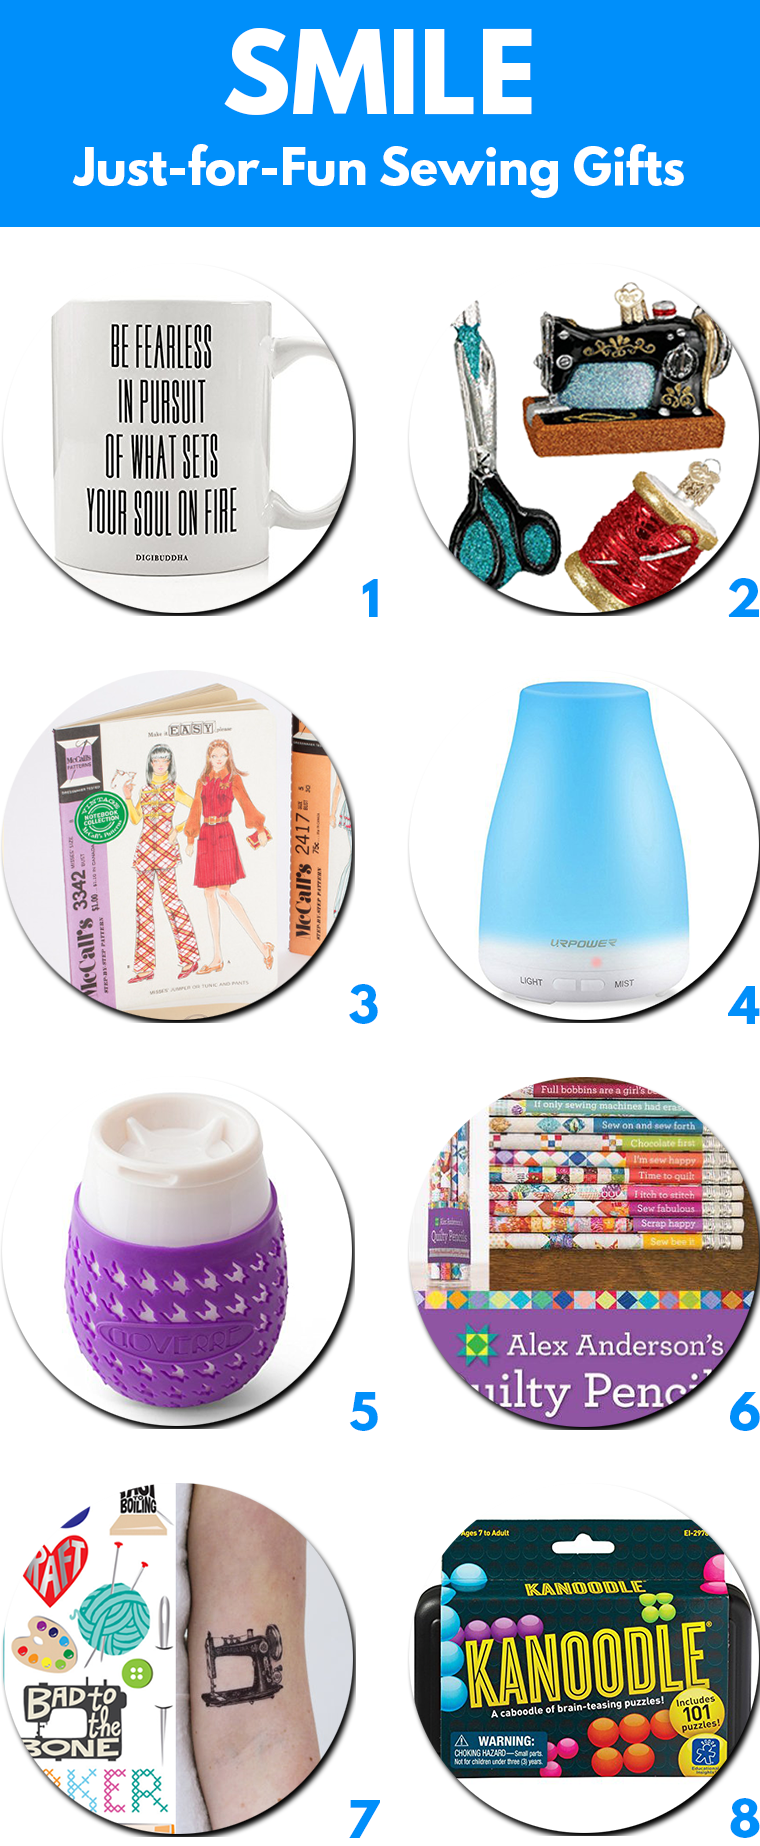 Smile Gifts for Sewing Lovers Sie Macht